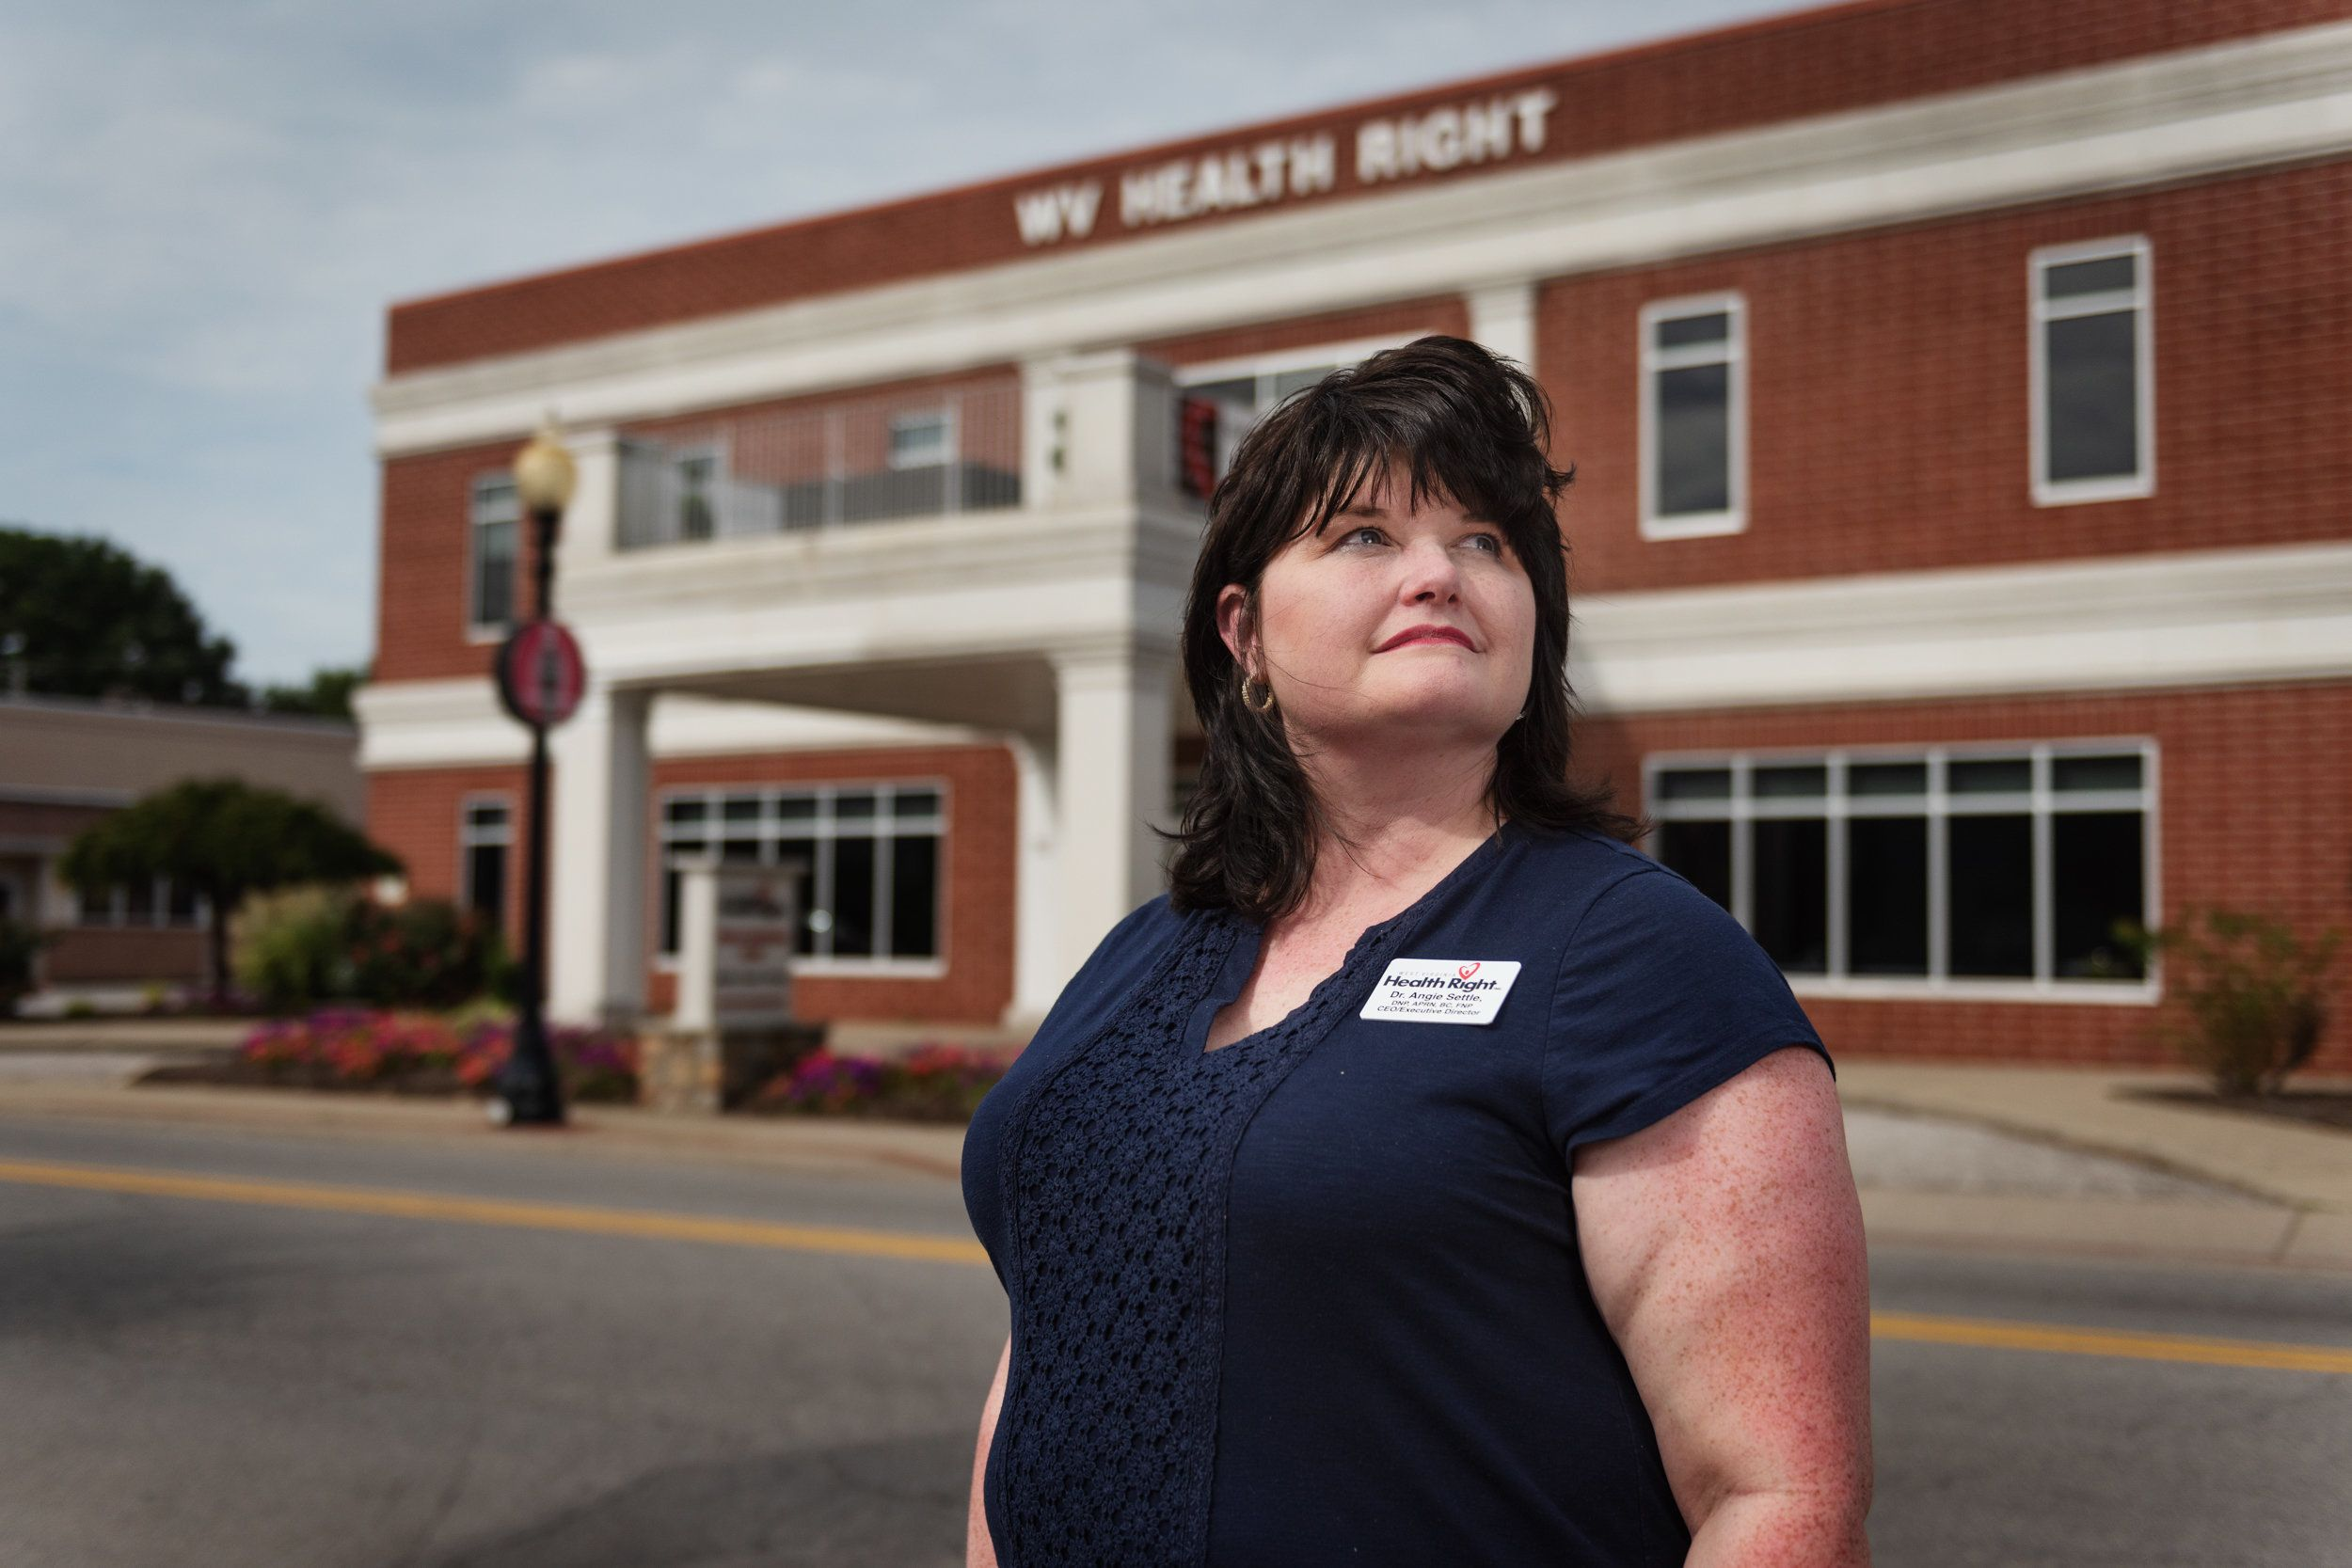 Dr. Angie Settle leads West Virginia Health Right, which has been instrumental in fighting hepatitis A on the ground in Charl